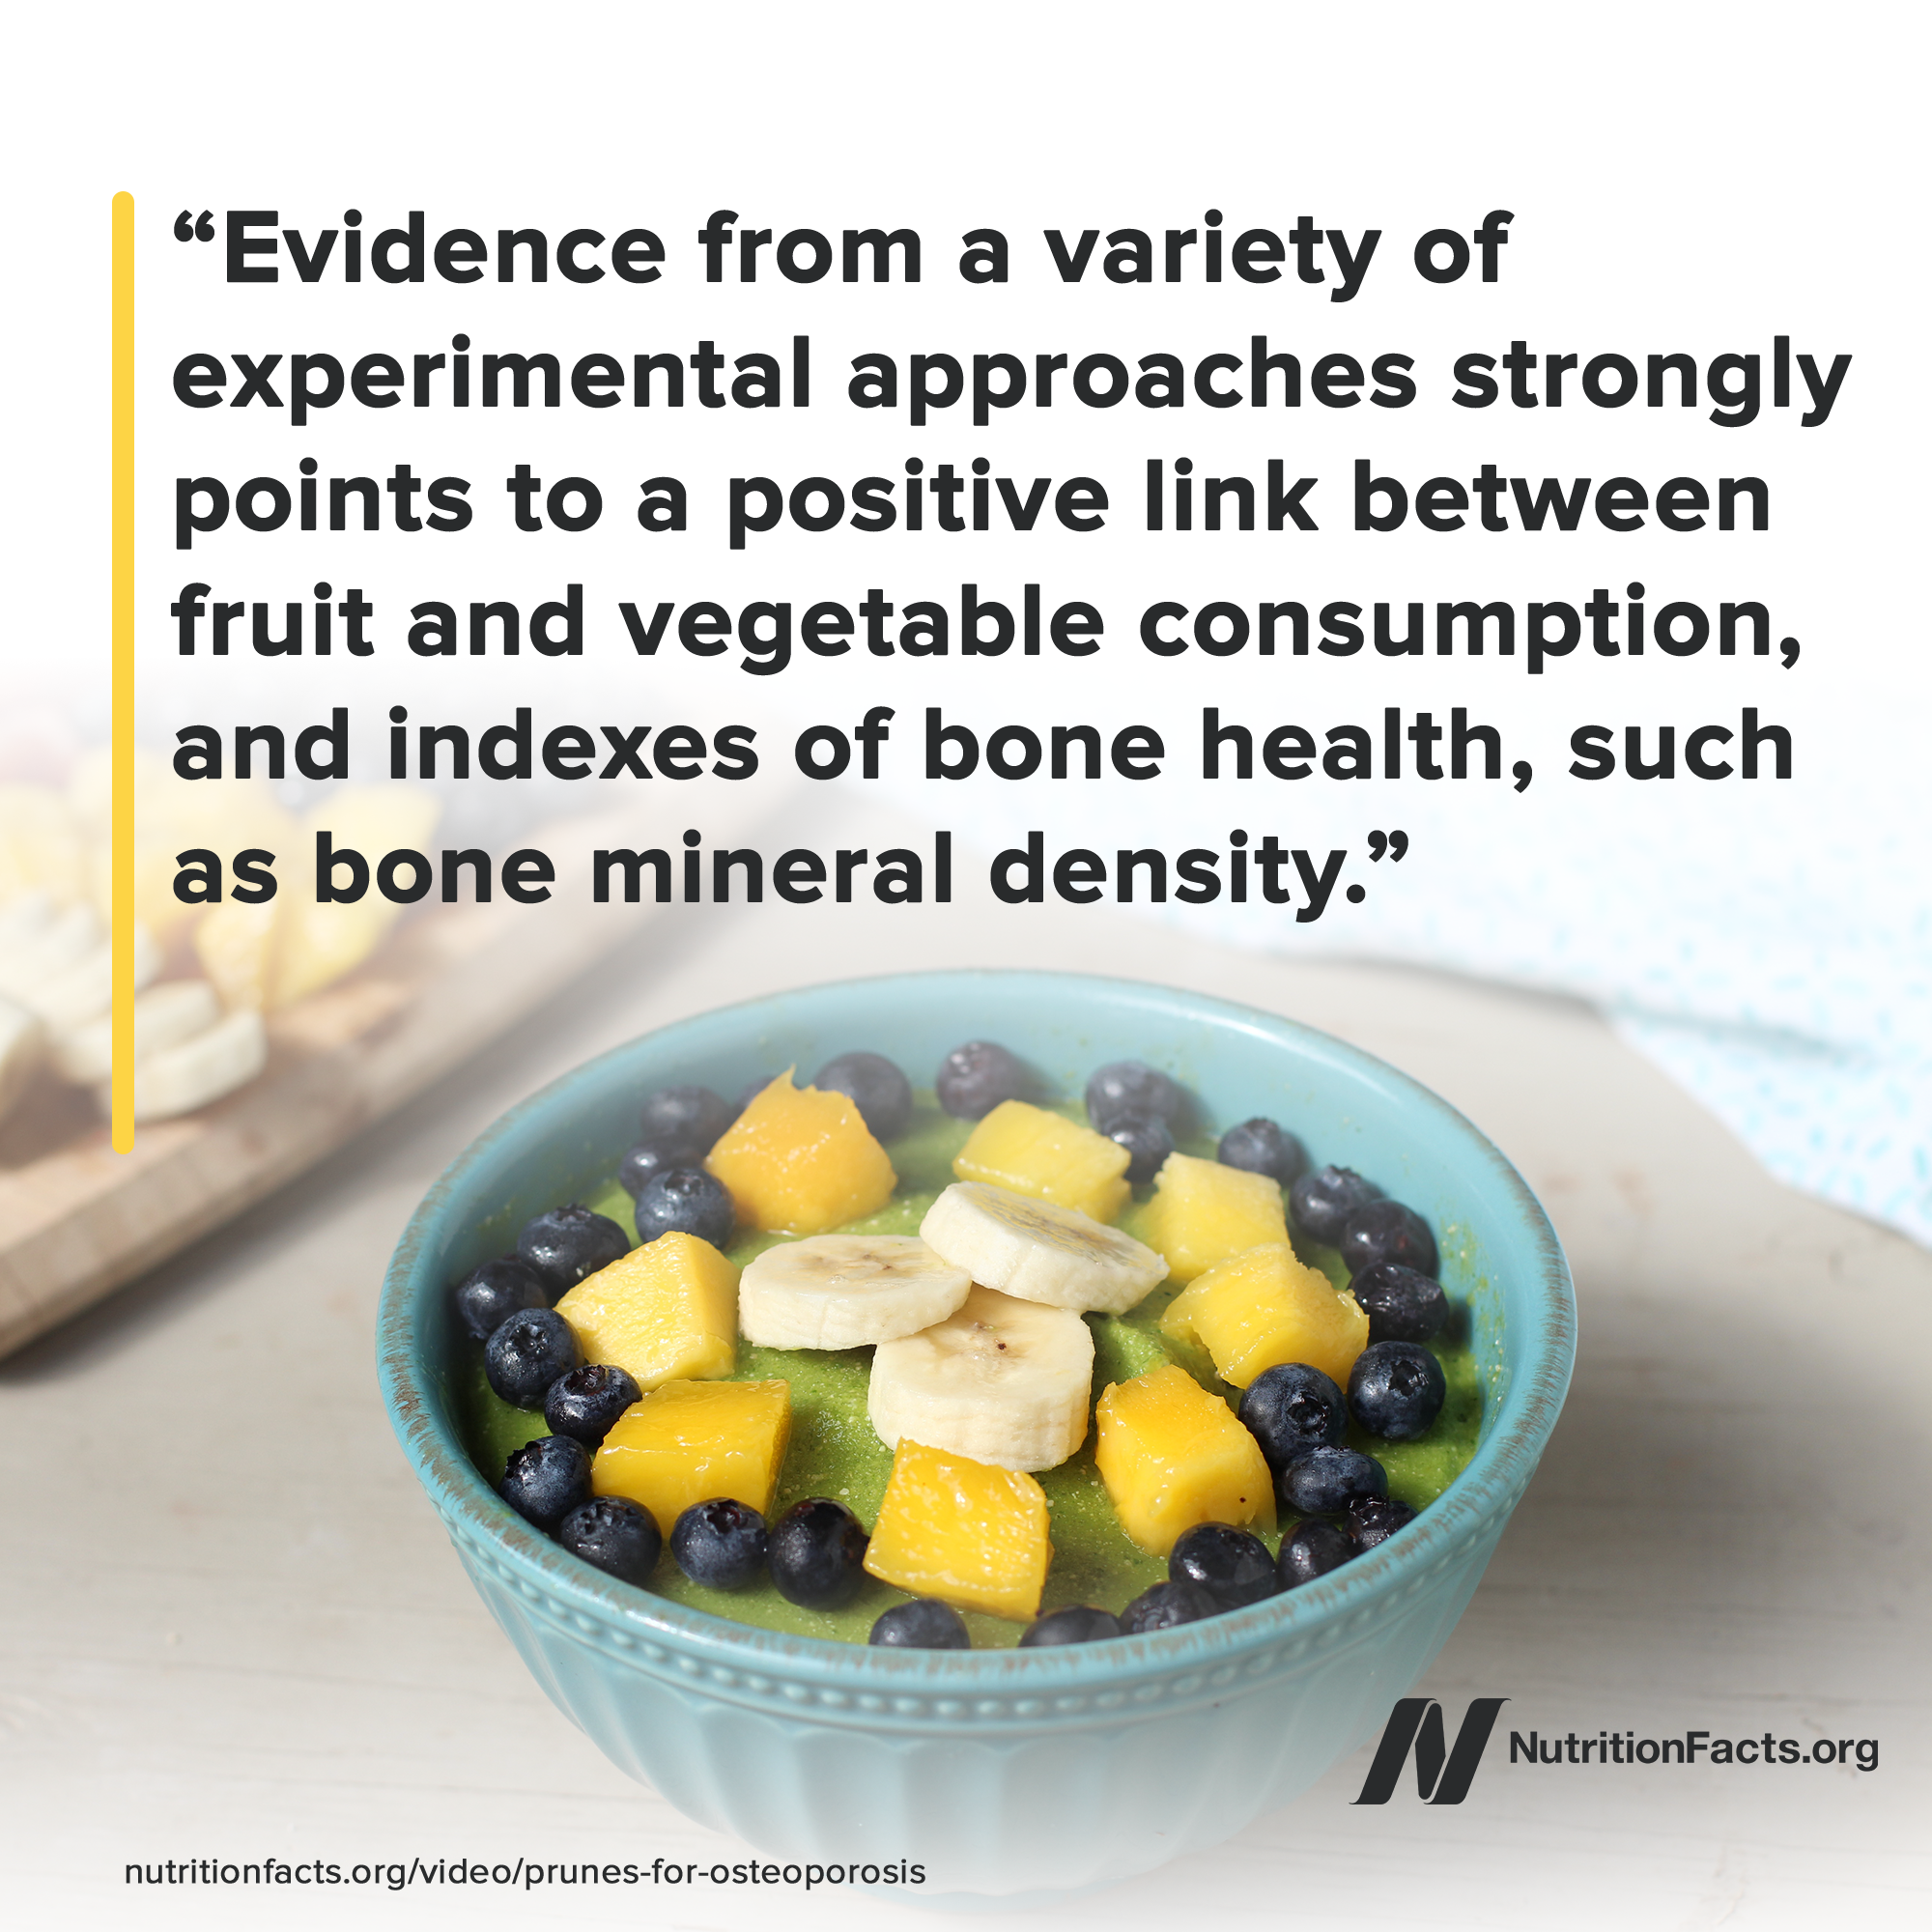 38++ Increased fiber in the diet can help prevent osteoporosis info